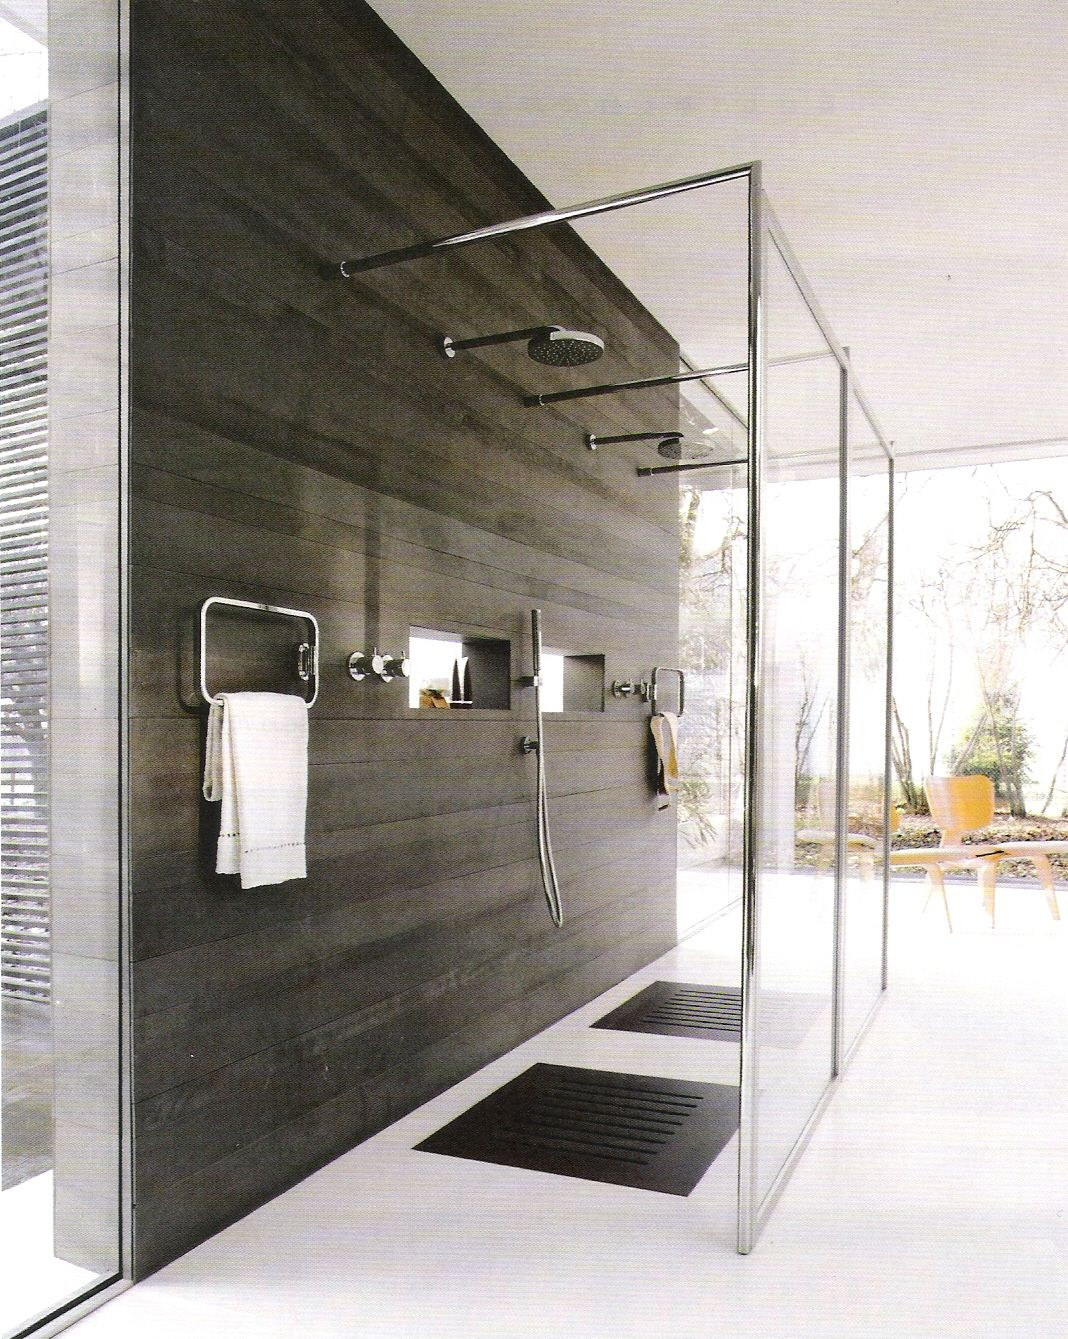 25 Incredible Open Shower Ideas Open Showers Bath Design Bathroom Design